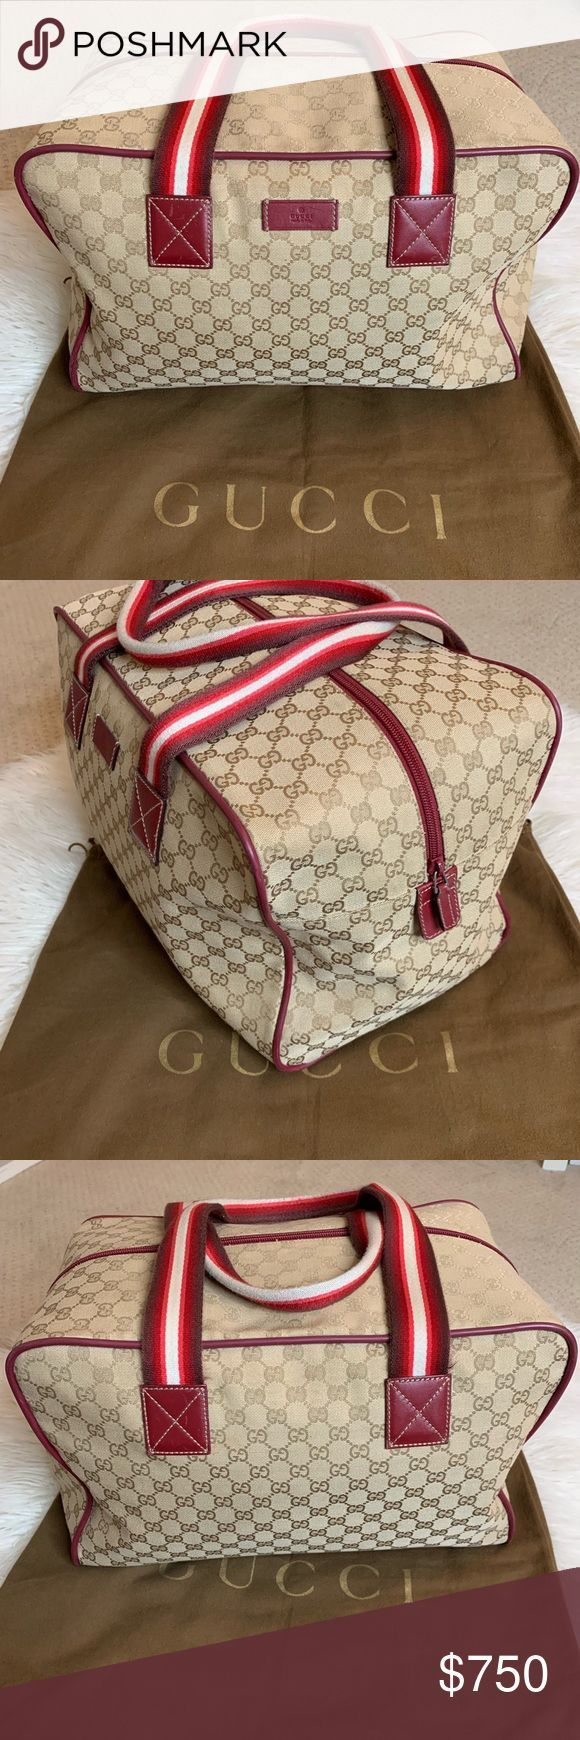 GUCCI TRAVEL DUFFLE BAG GUCCI TRAVEL DUFFLE BAG PERFECT TRAVEL BAG FOR TRIPS  G